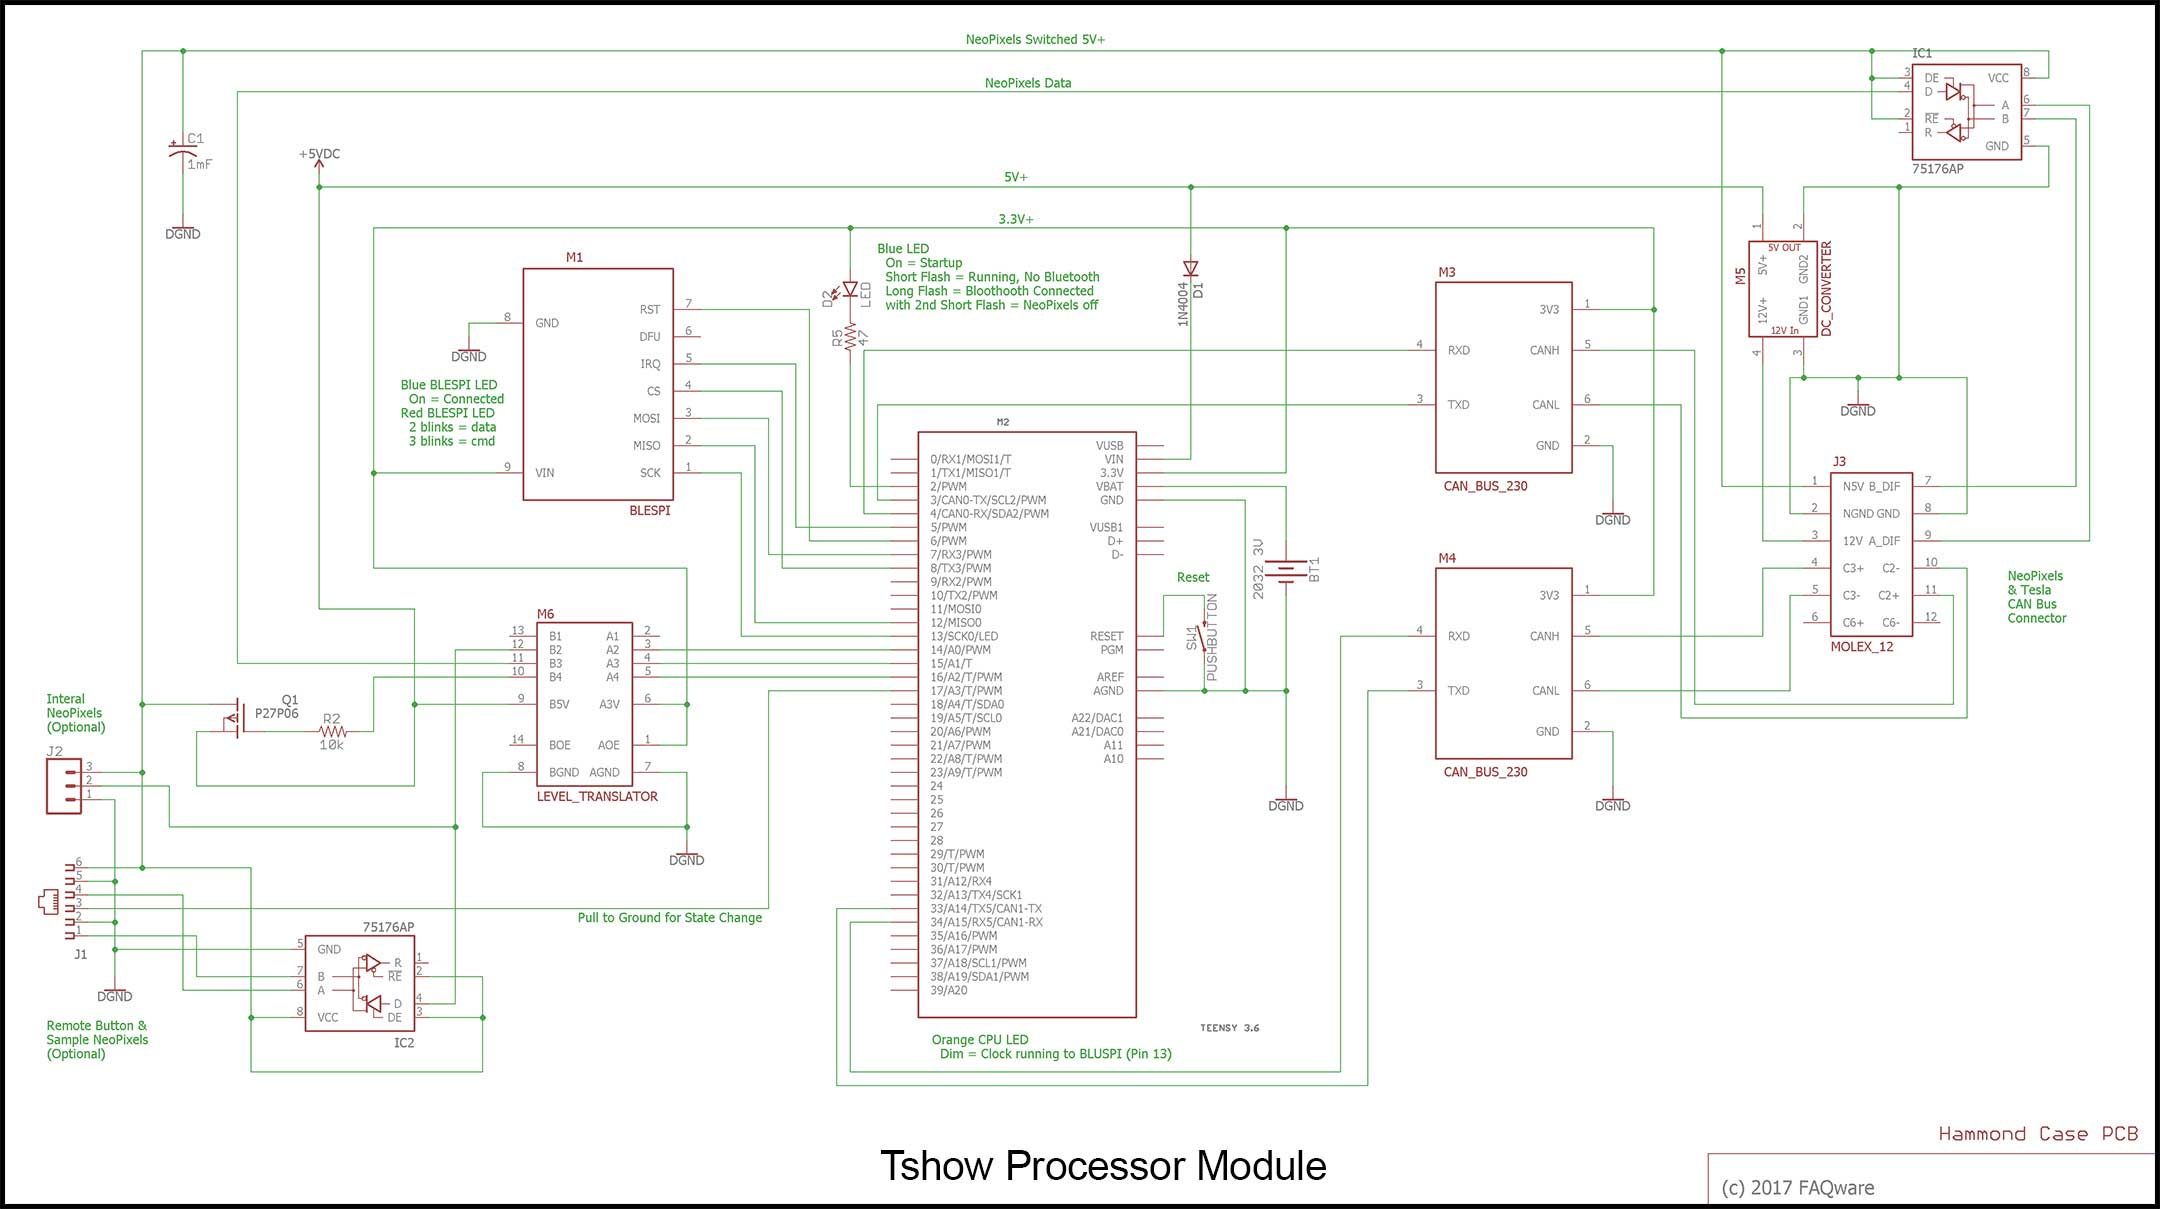 wiring diagram for usb headset with Instamute Wiring Diagrams on Nissan Iso Wiring Harness Connector Stereo Radio Adapter From as well Usbc Wiring Diagram together with 4 Pin Co Mic Wiring Diagram also Search together with Ps3 Headset Wiring Diagram.